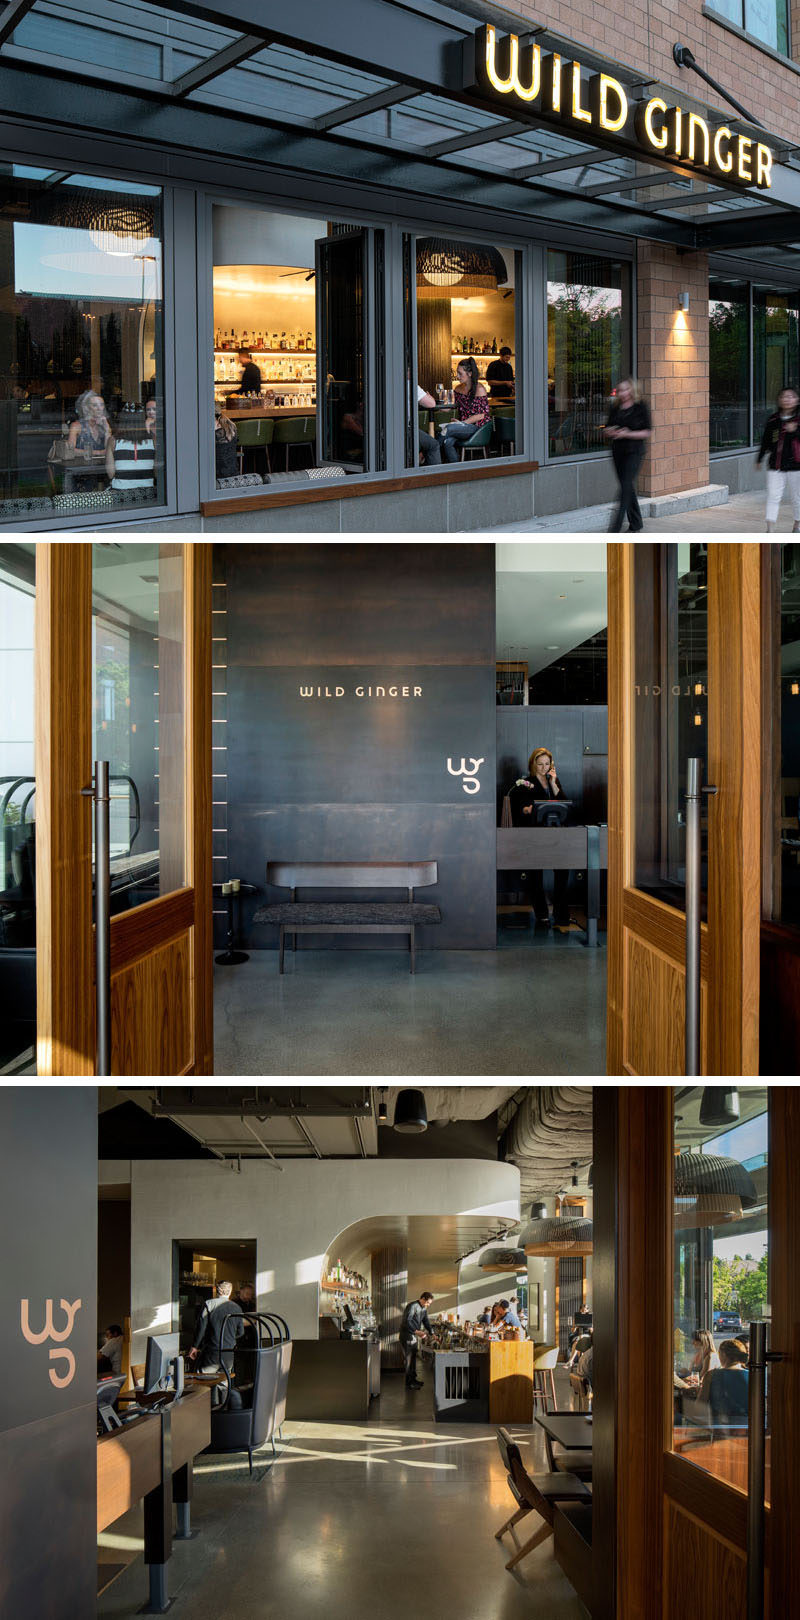 Seattle-based firm SkB Architects have recently completed the interior design for 'Wild Ginger', an established Southeast Asian restaurant that moved to a new location inBellevue, Washington.